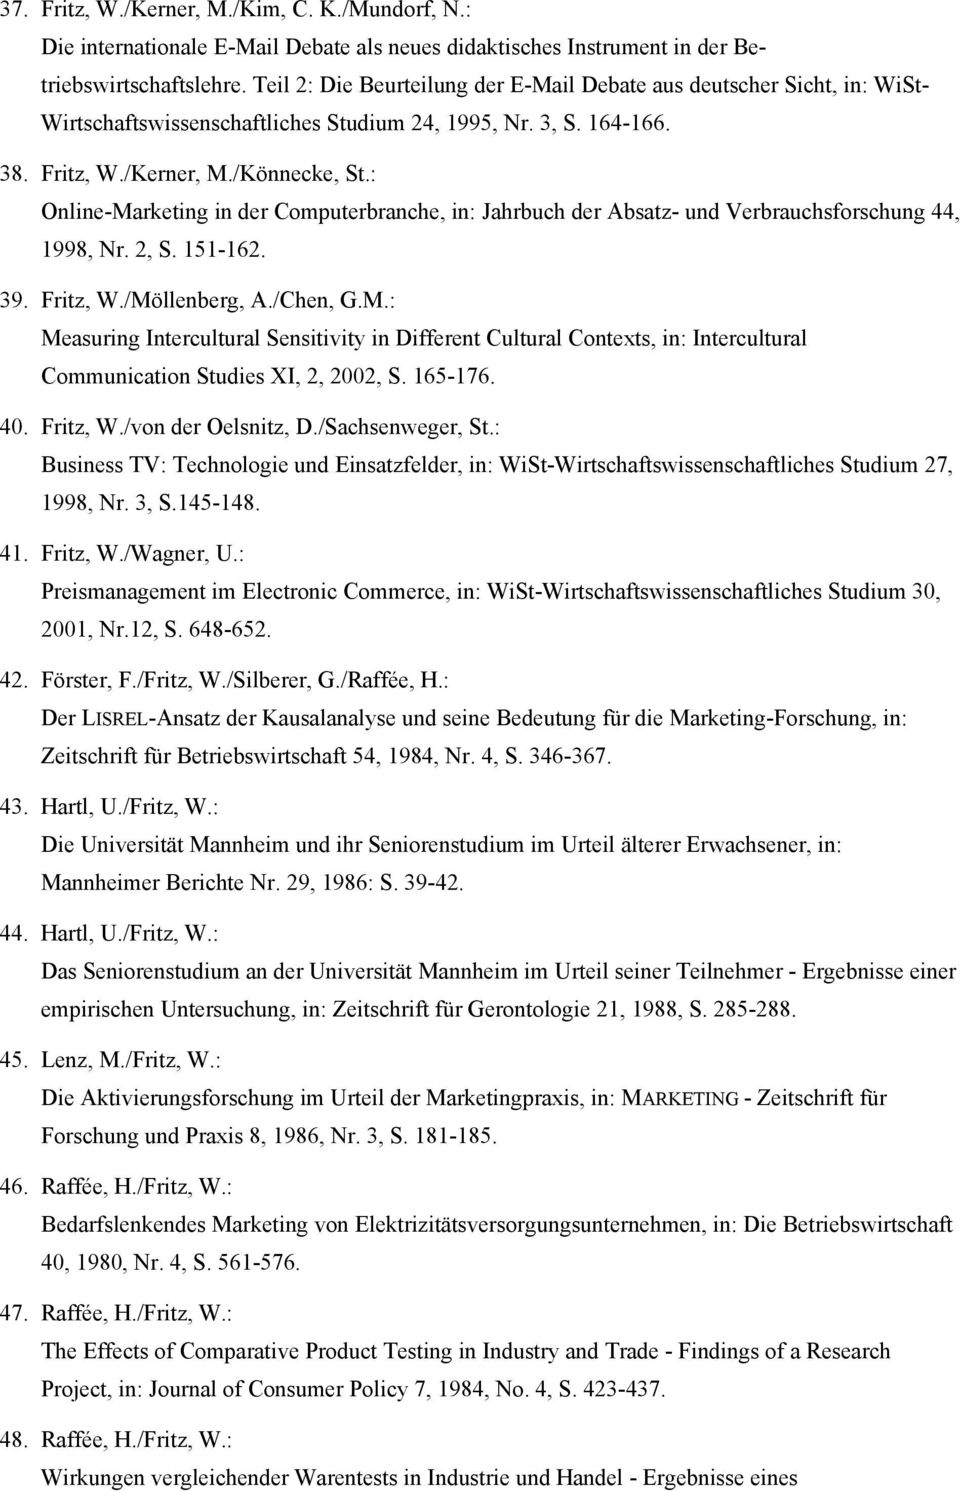 : Online-Marketing in der Computerbranche, in: Jahrbuch der Absatz- und Verbrauchsforschung 44, 1998, Nr. 2, S. 151-162. 39. Fritz, W./Möllenberg, A./Chen, G.M.: Measuring Intercultural Sensitivity in Different Cultural Contexts, in: Intercultural Communication Studies XI, 2, 2002, S.